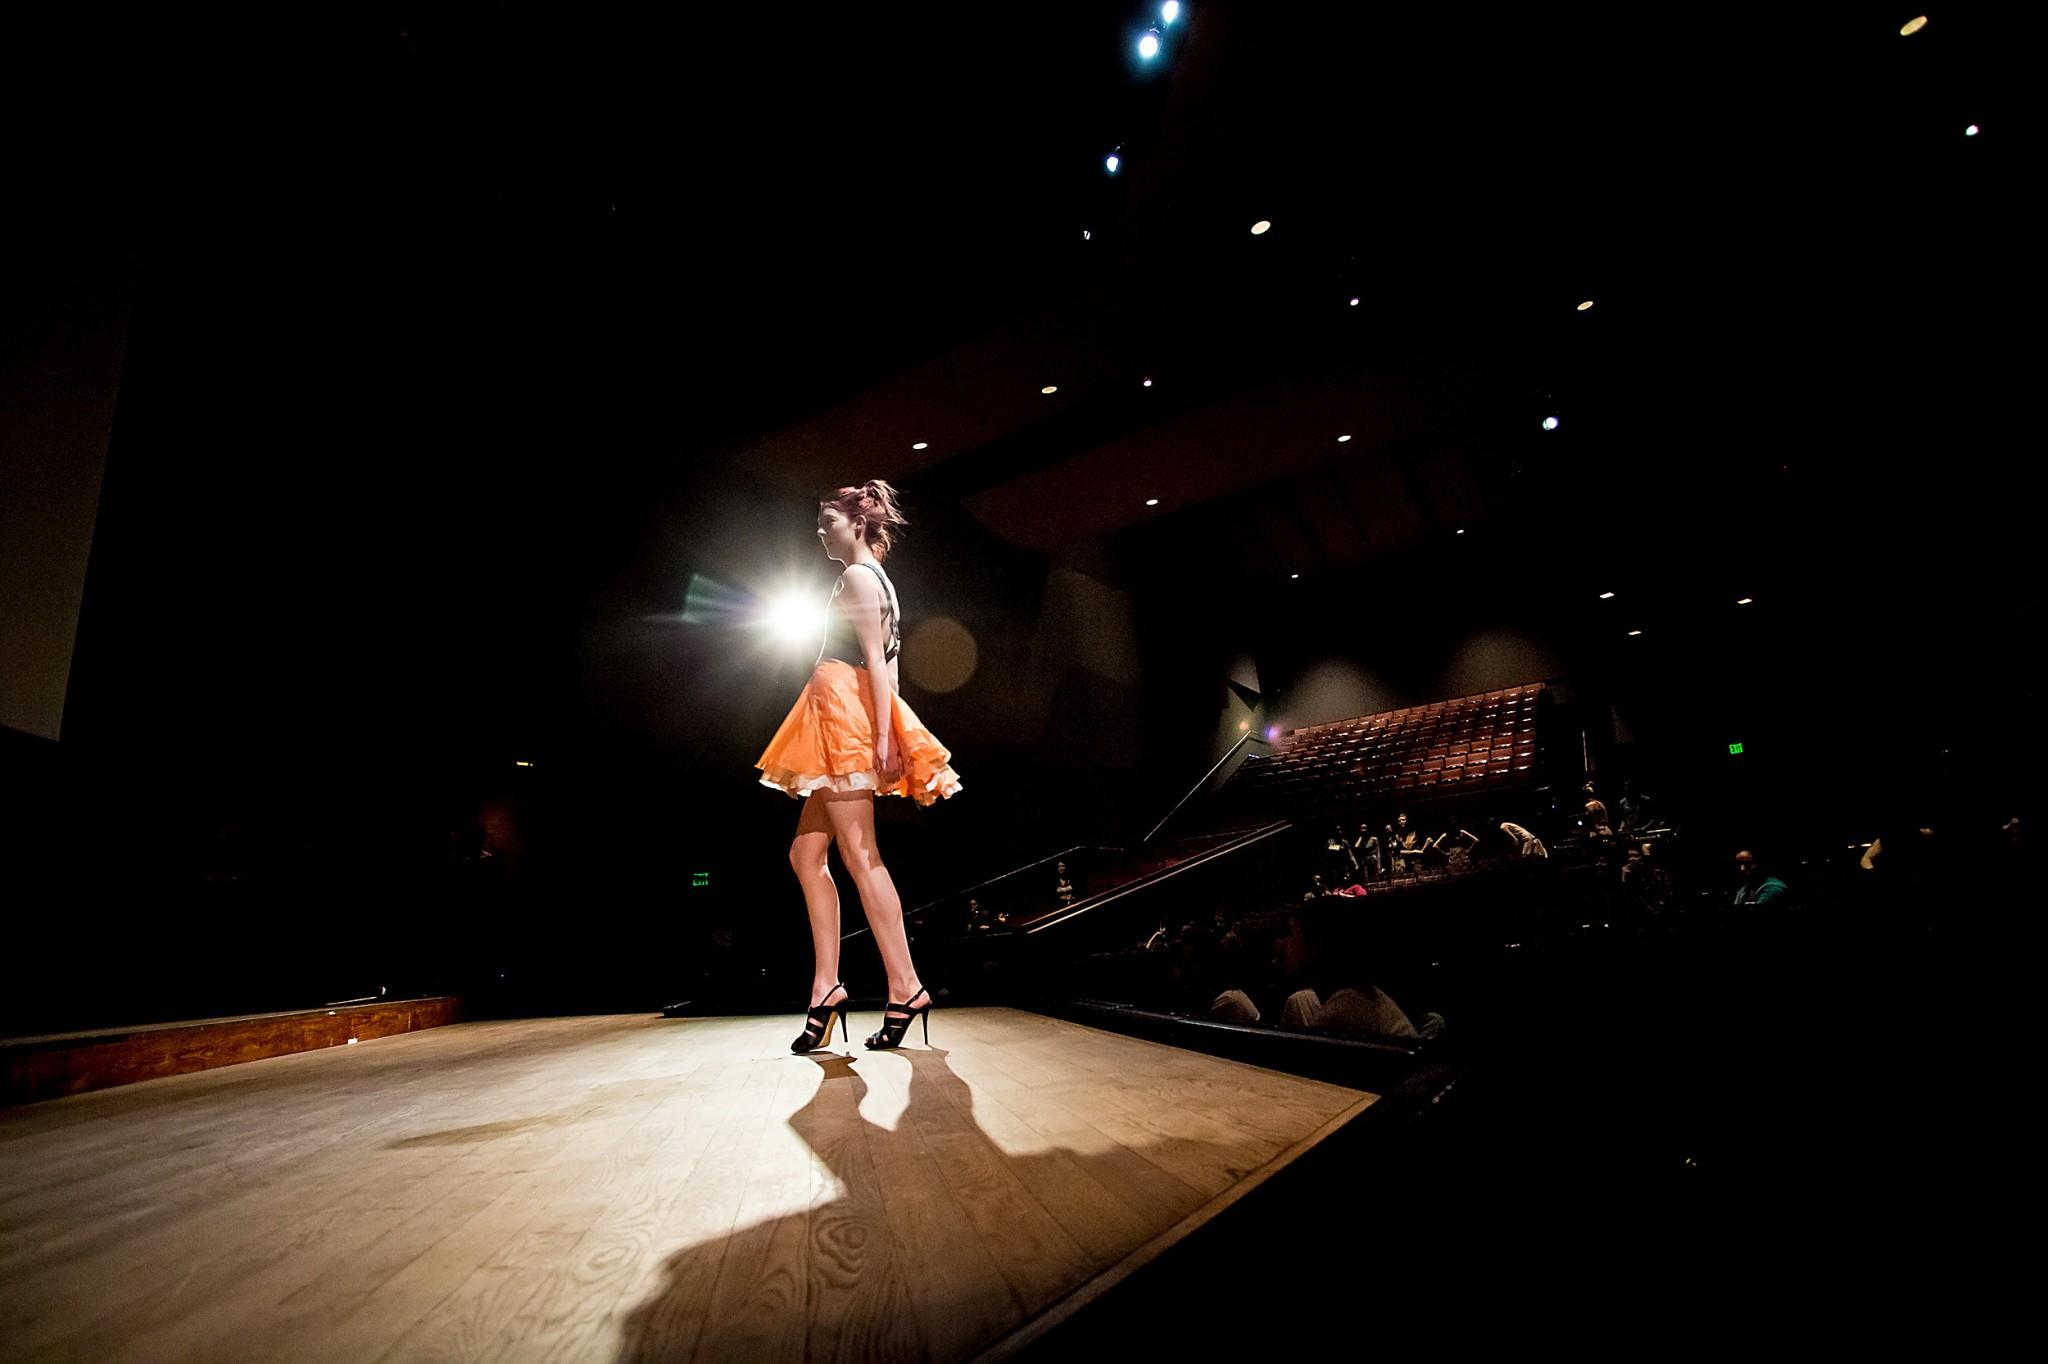 Jessie Weimer poses in a parachute dress during a dress rehersal Thursday night for the spring fashion show in the Lincoln Center. The show is put on by CSU Fashion Group International.